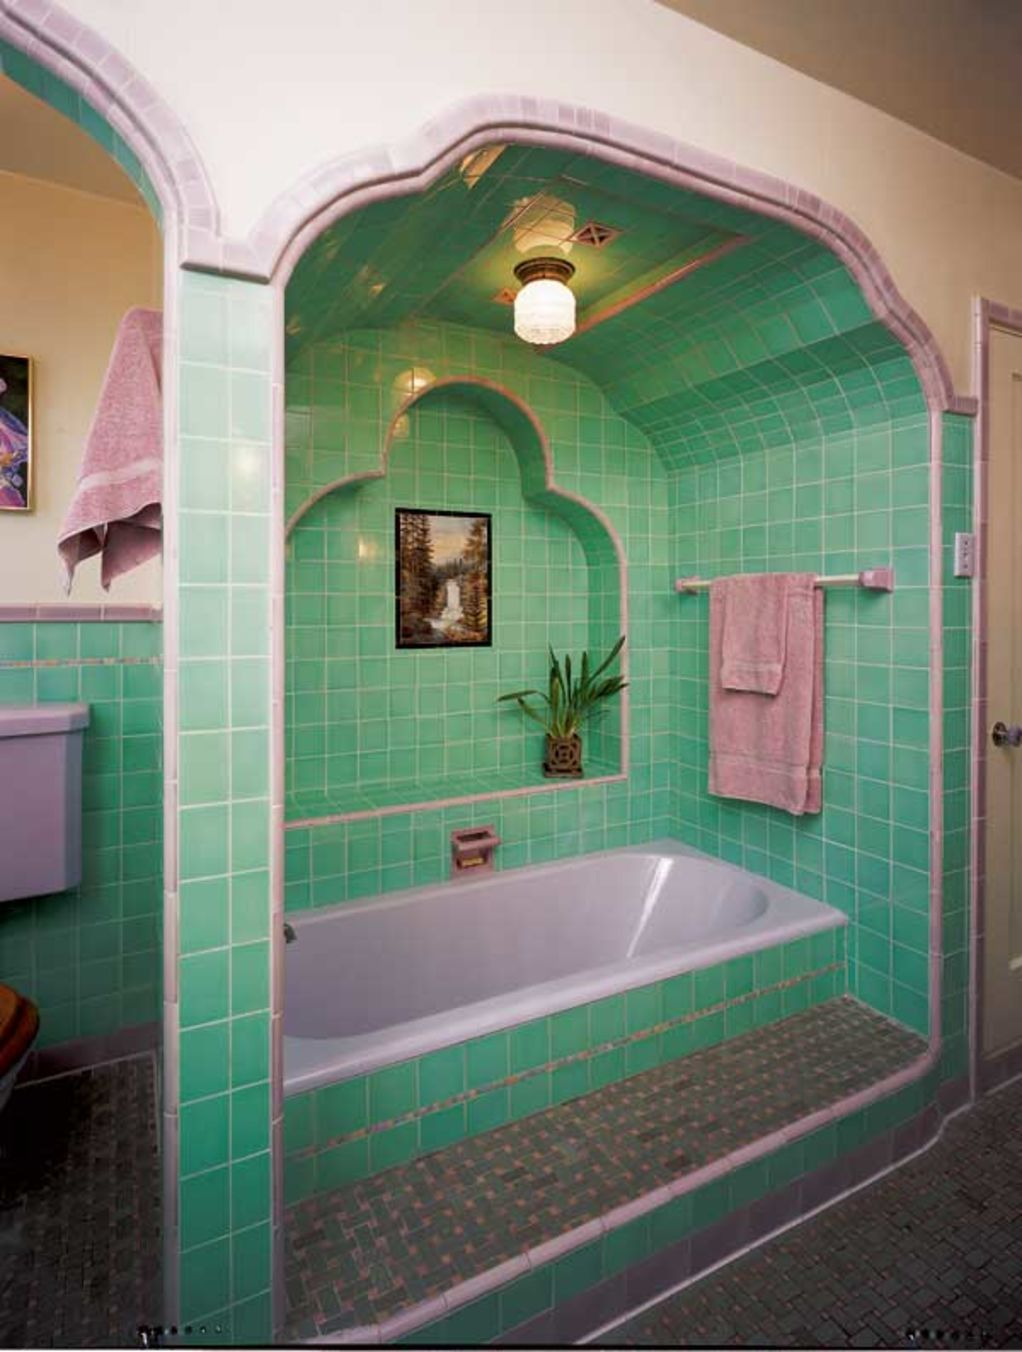 Dazzling Tile for Art Deco Baths | Arts & Crafts Homes and the ...